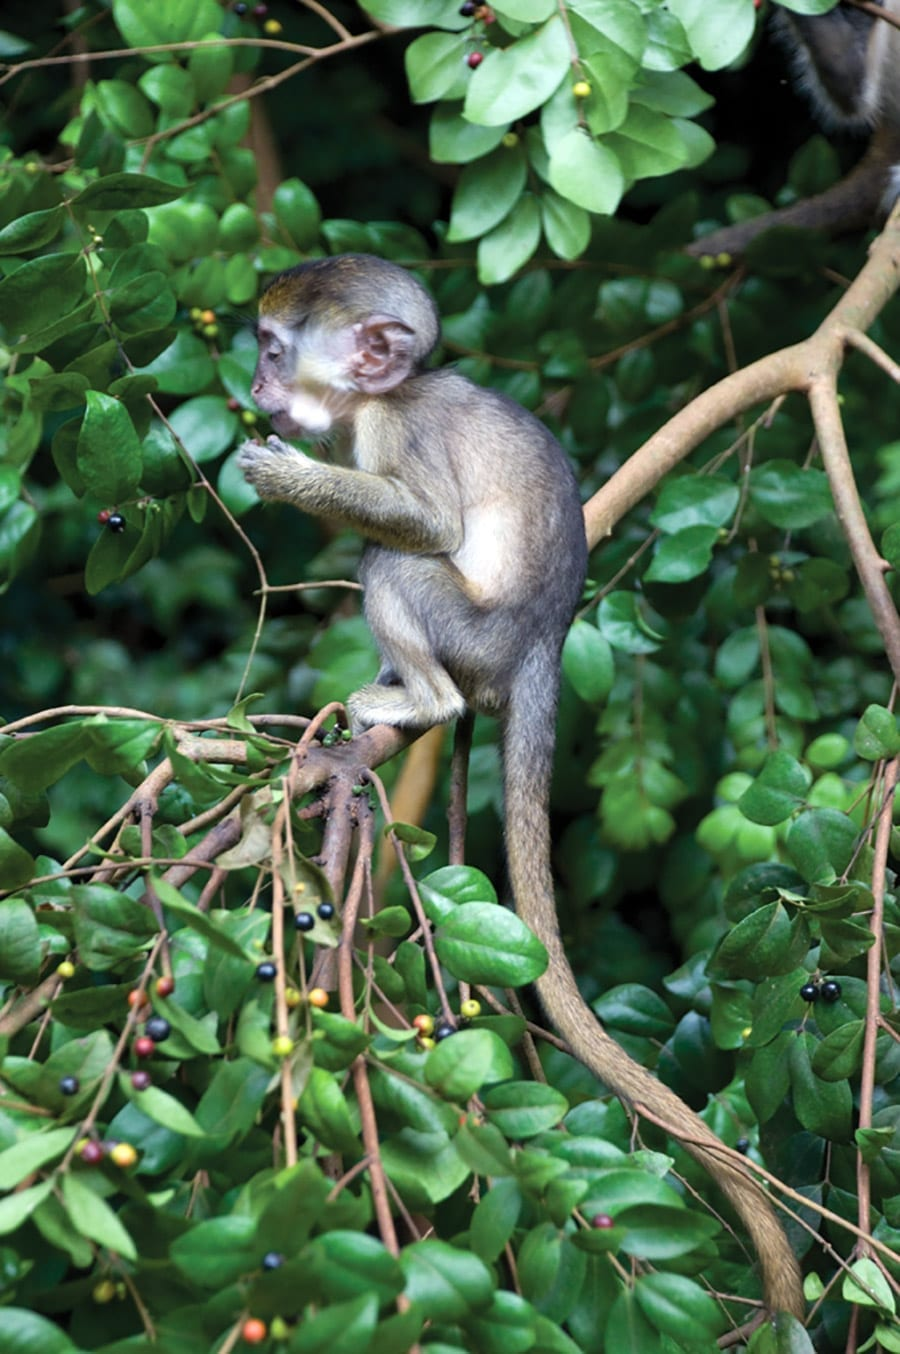 The Mother Green Monkey are very protective over their young and usually take care of them for the first year before allowing them to live as adults.